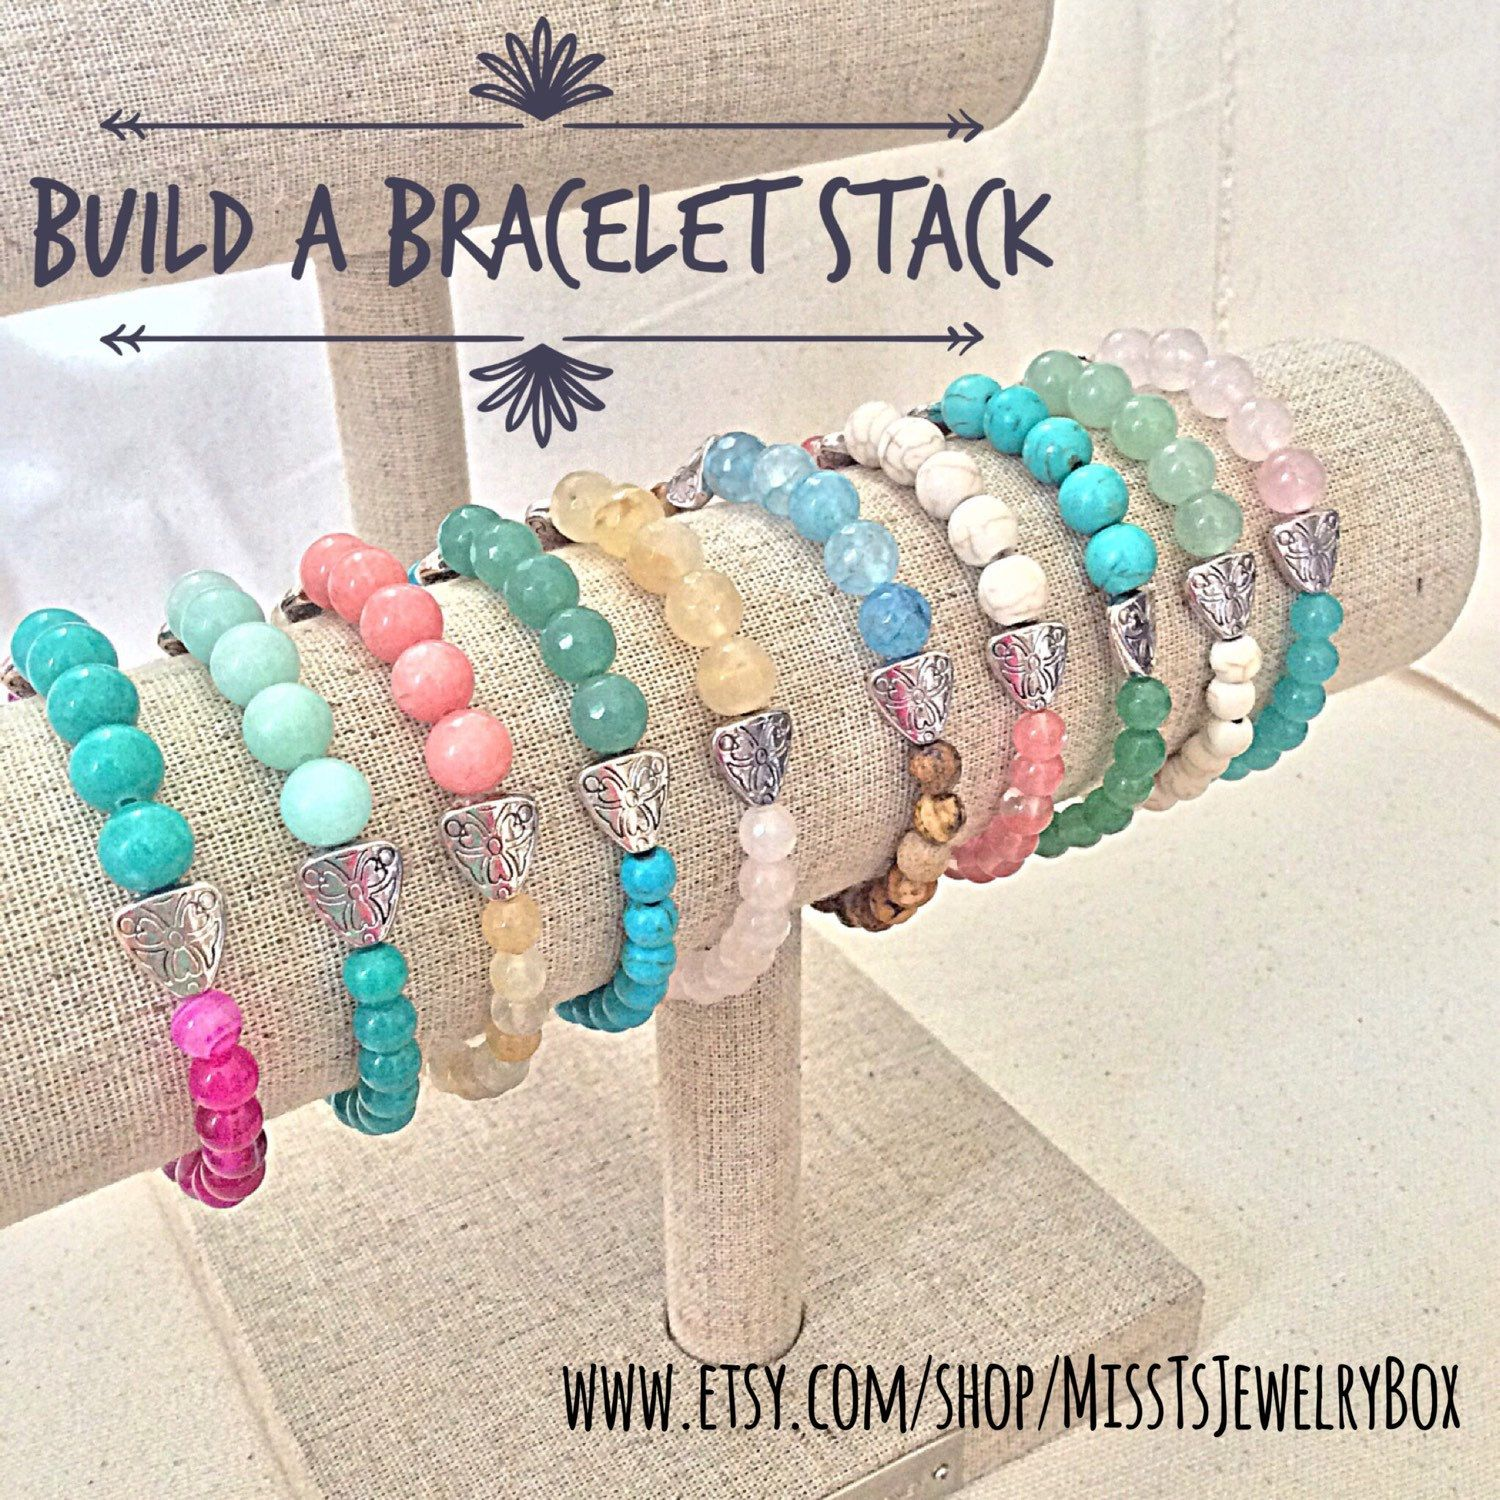 ✨Create your own Bracelet Stack to match YOUR unique style!✨Choose from these, and many more, in my Build a Bracelet Stack section✨20% off when you buy any 3 or more!! (coupon code in product descriptions)